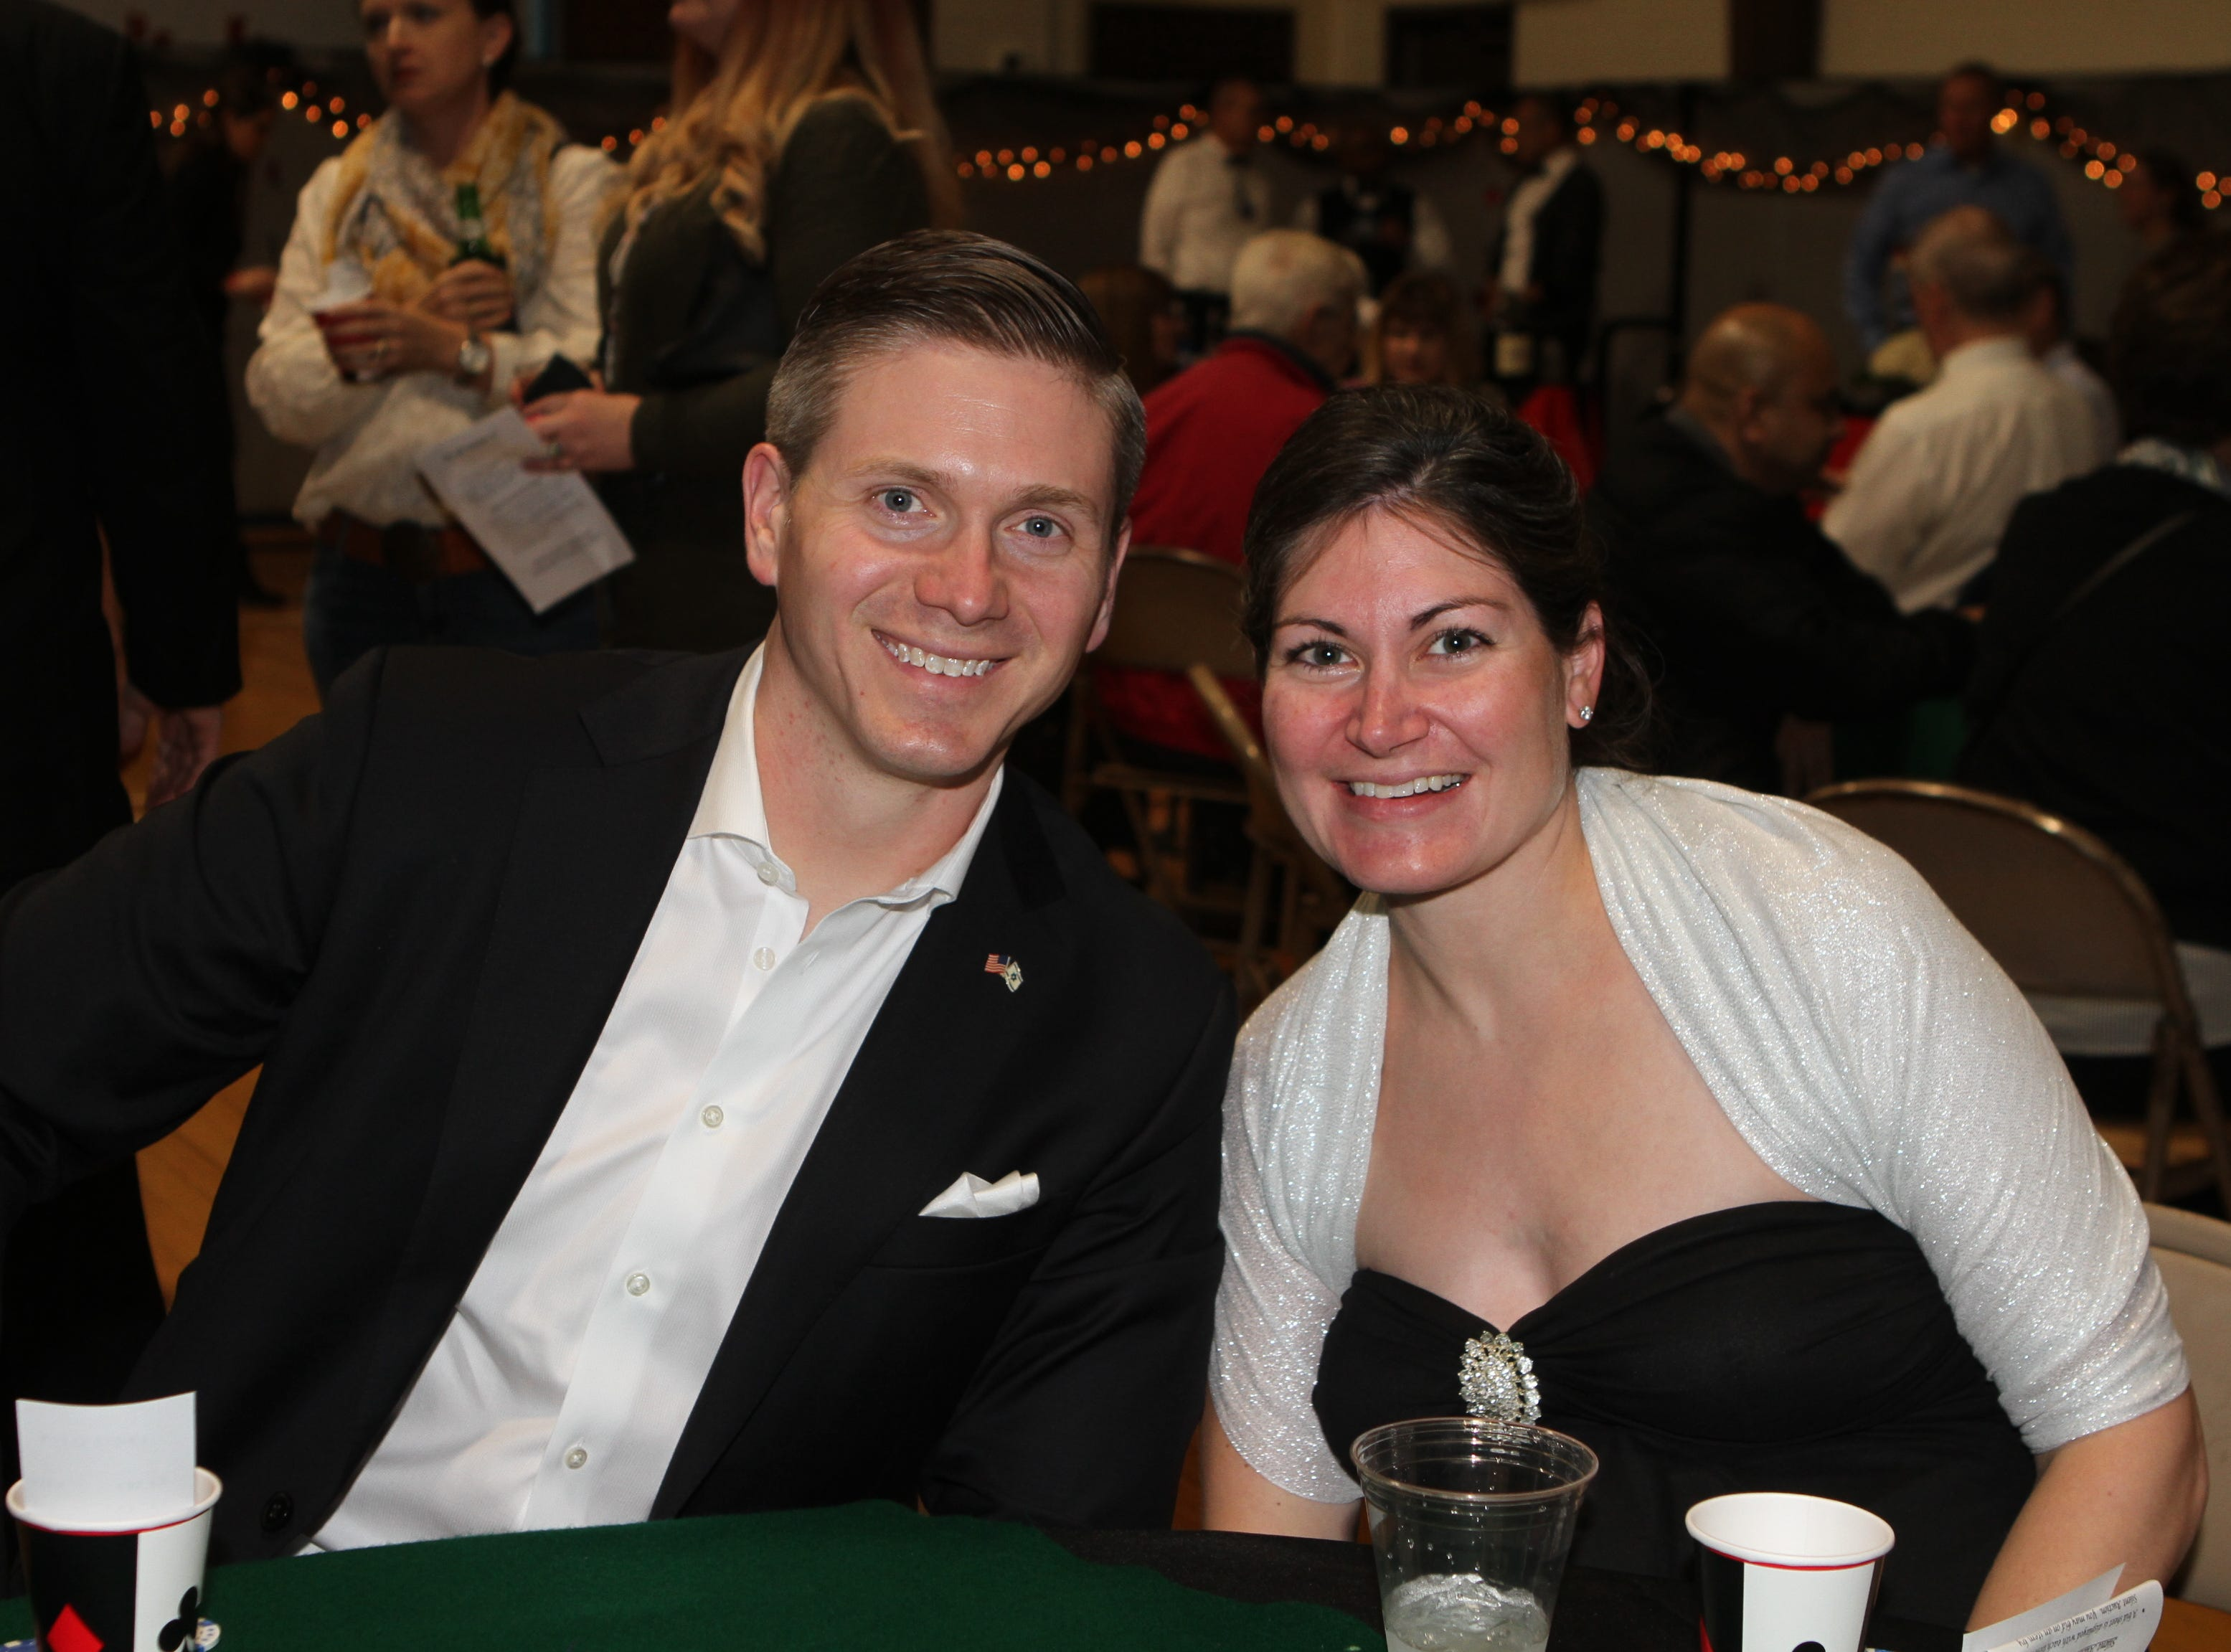 John and Sarah Toliver at Casino Night at Immaculate Conception School on Saturday, Nov. 3, 2018.